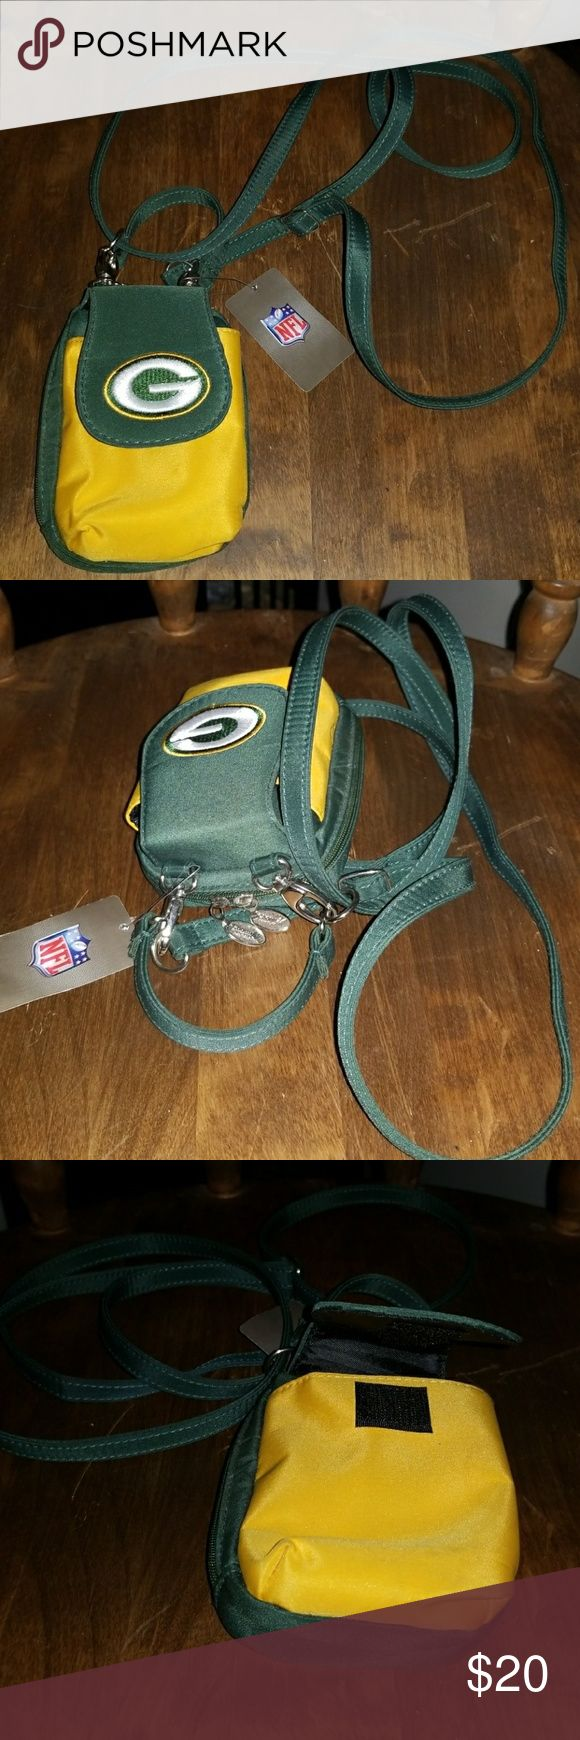 NFL green bay packers pouch Green bay packers little crossbody or hand held phone case,cigarette case,long shoulder strap,and hand carry strap ,one outside pocket ,2 inside pockets, zip zip closure, one id slot on back. Green bay packers Bags Mini Bags